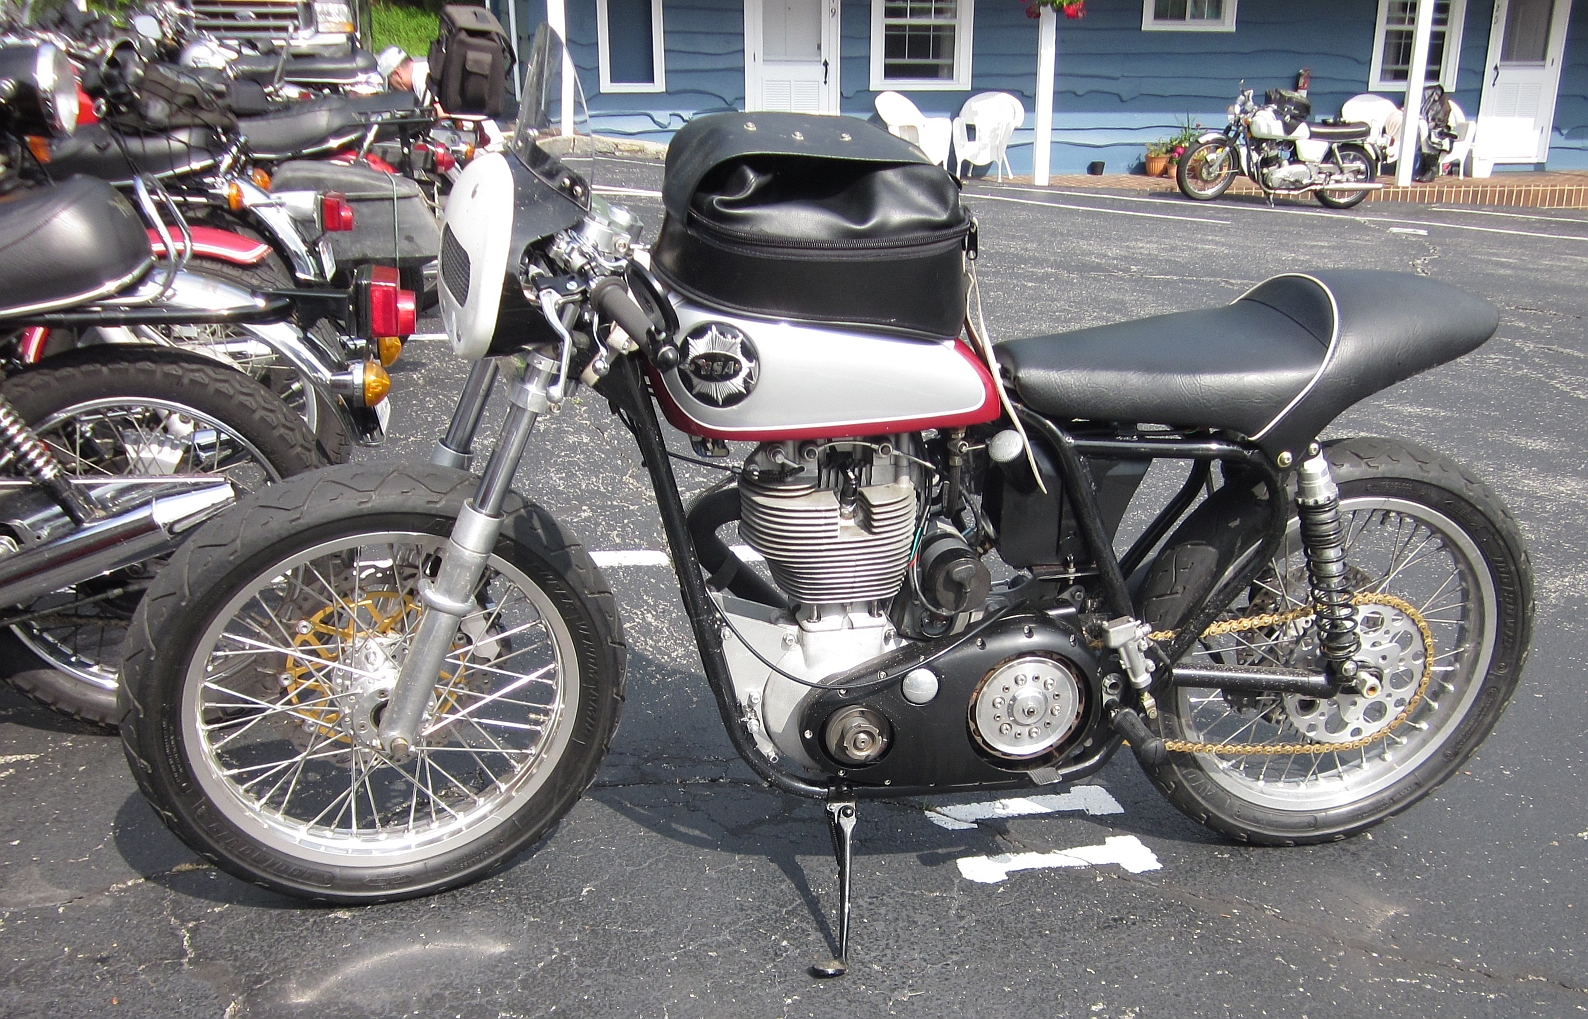 A Motard Bsa Gold Star Motorcycle Photo Of The Day